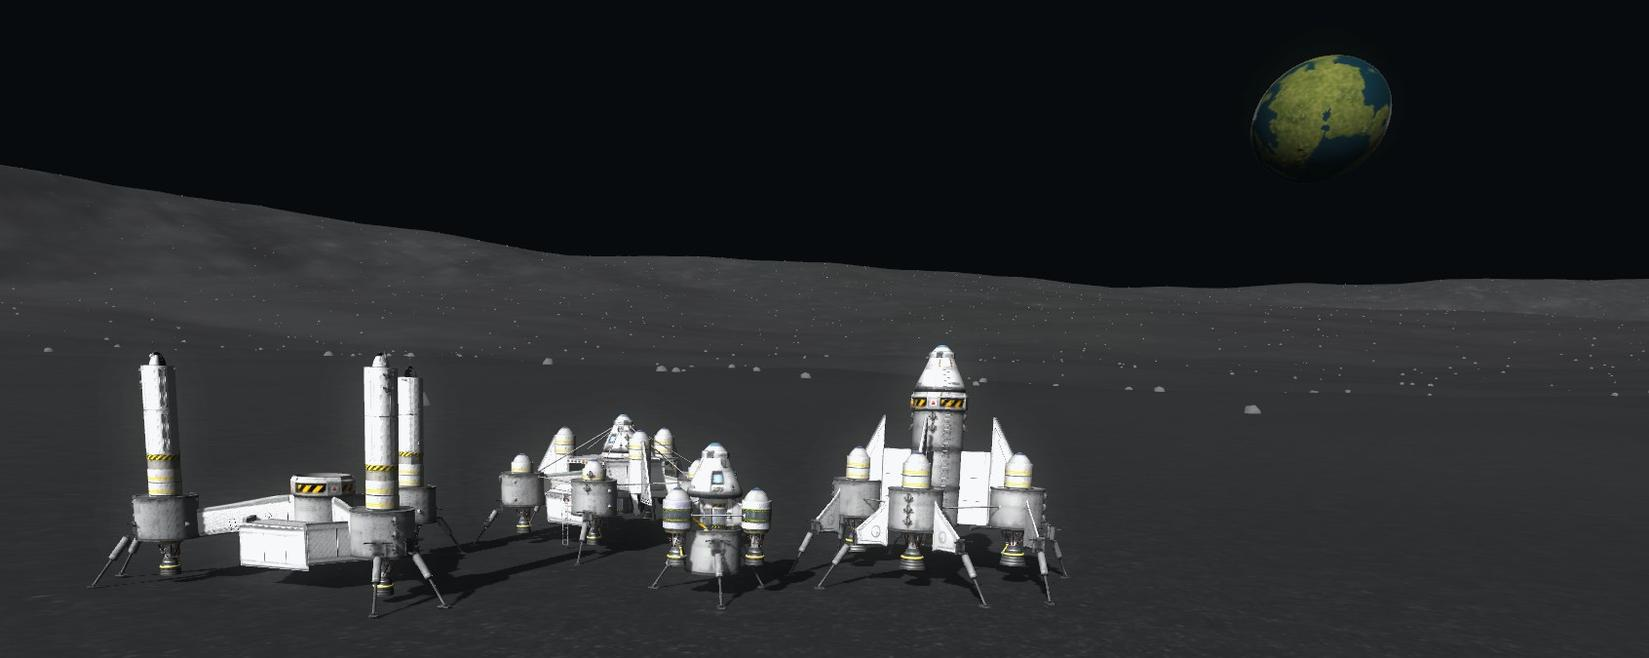 Moon Base - SimHQ Forums